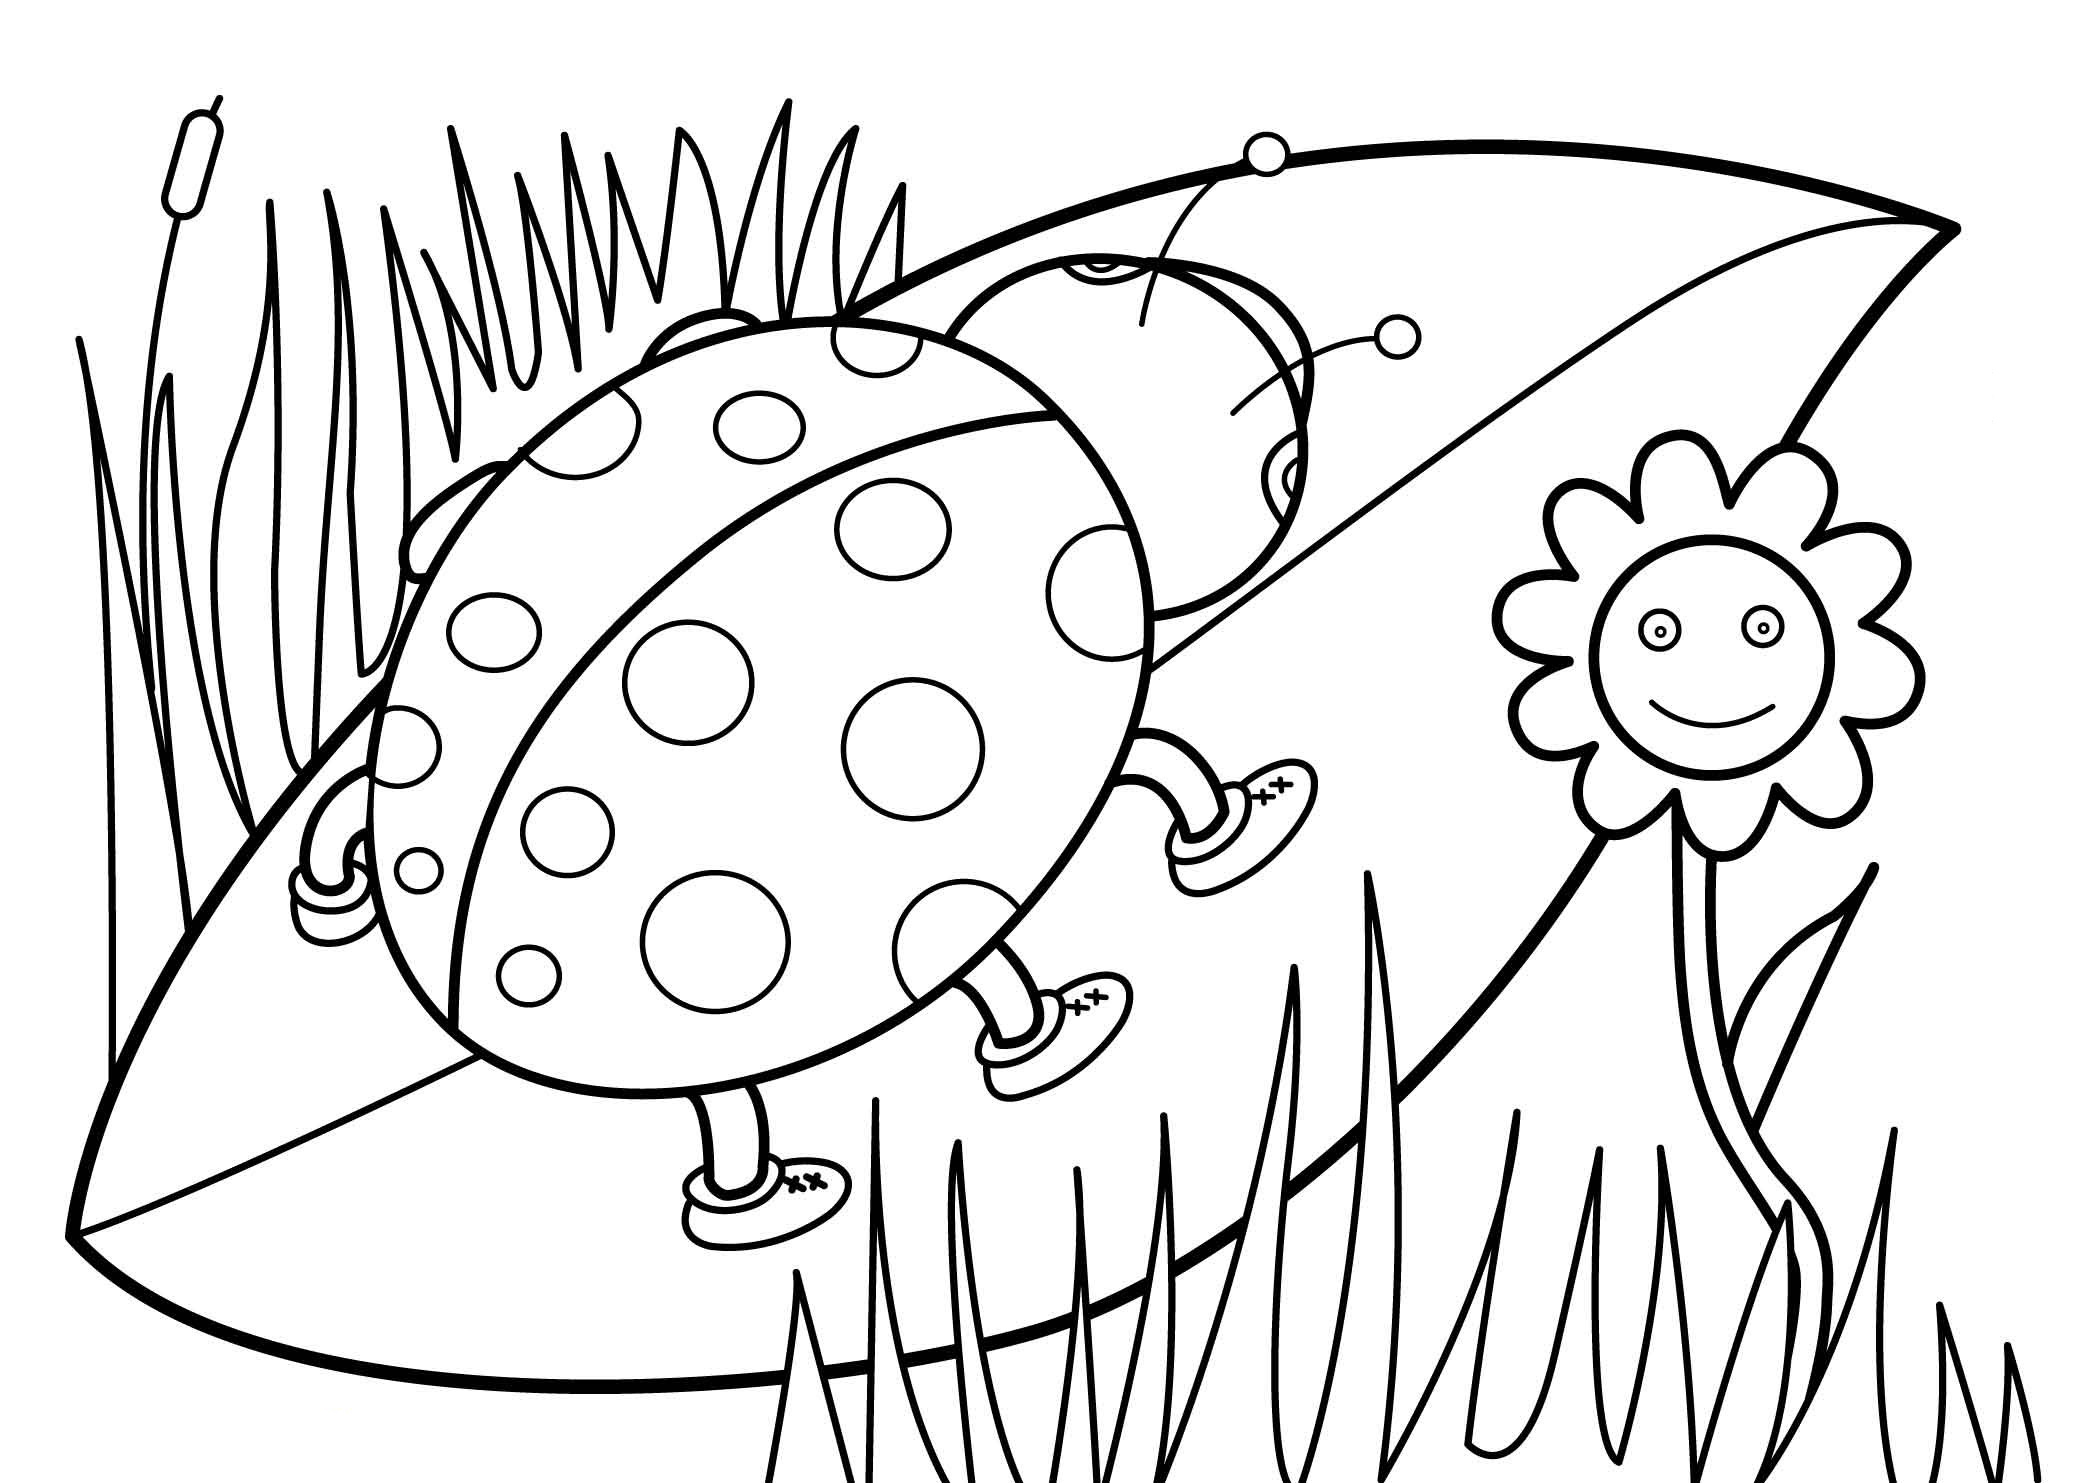 childrens colouring pictures transmissionpress disney coloring pages free disney pictures childrens colouring